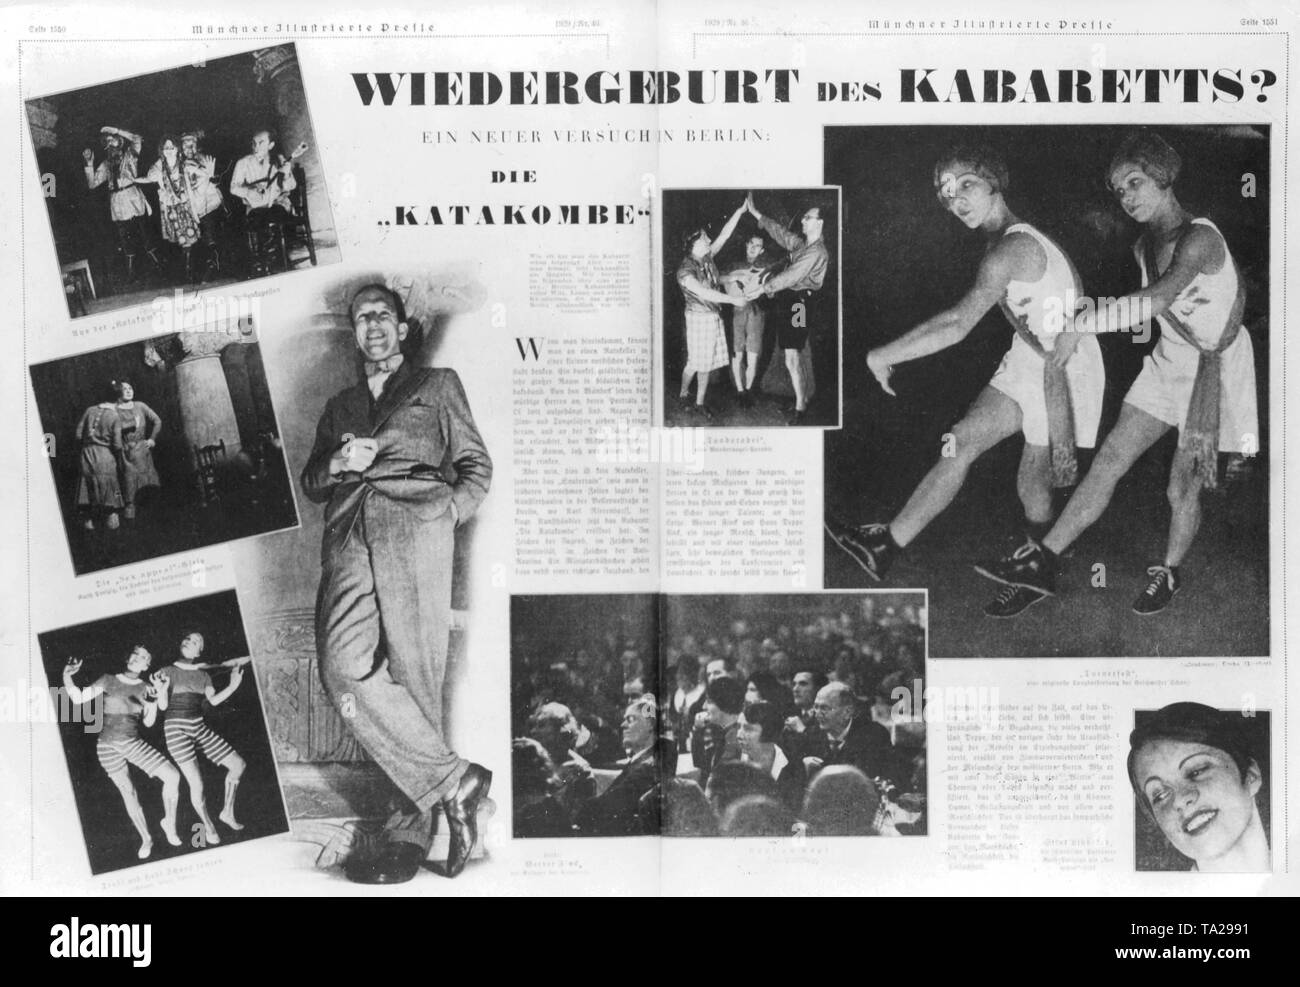 Report in the Muenchner Illustrierte Presse about the legendary Berlin cabaret 'Die Katakombe' (The Catacombs), that was associated with the name of Werner Finck until its closure in the Third Reich. - Stock Image